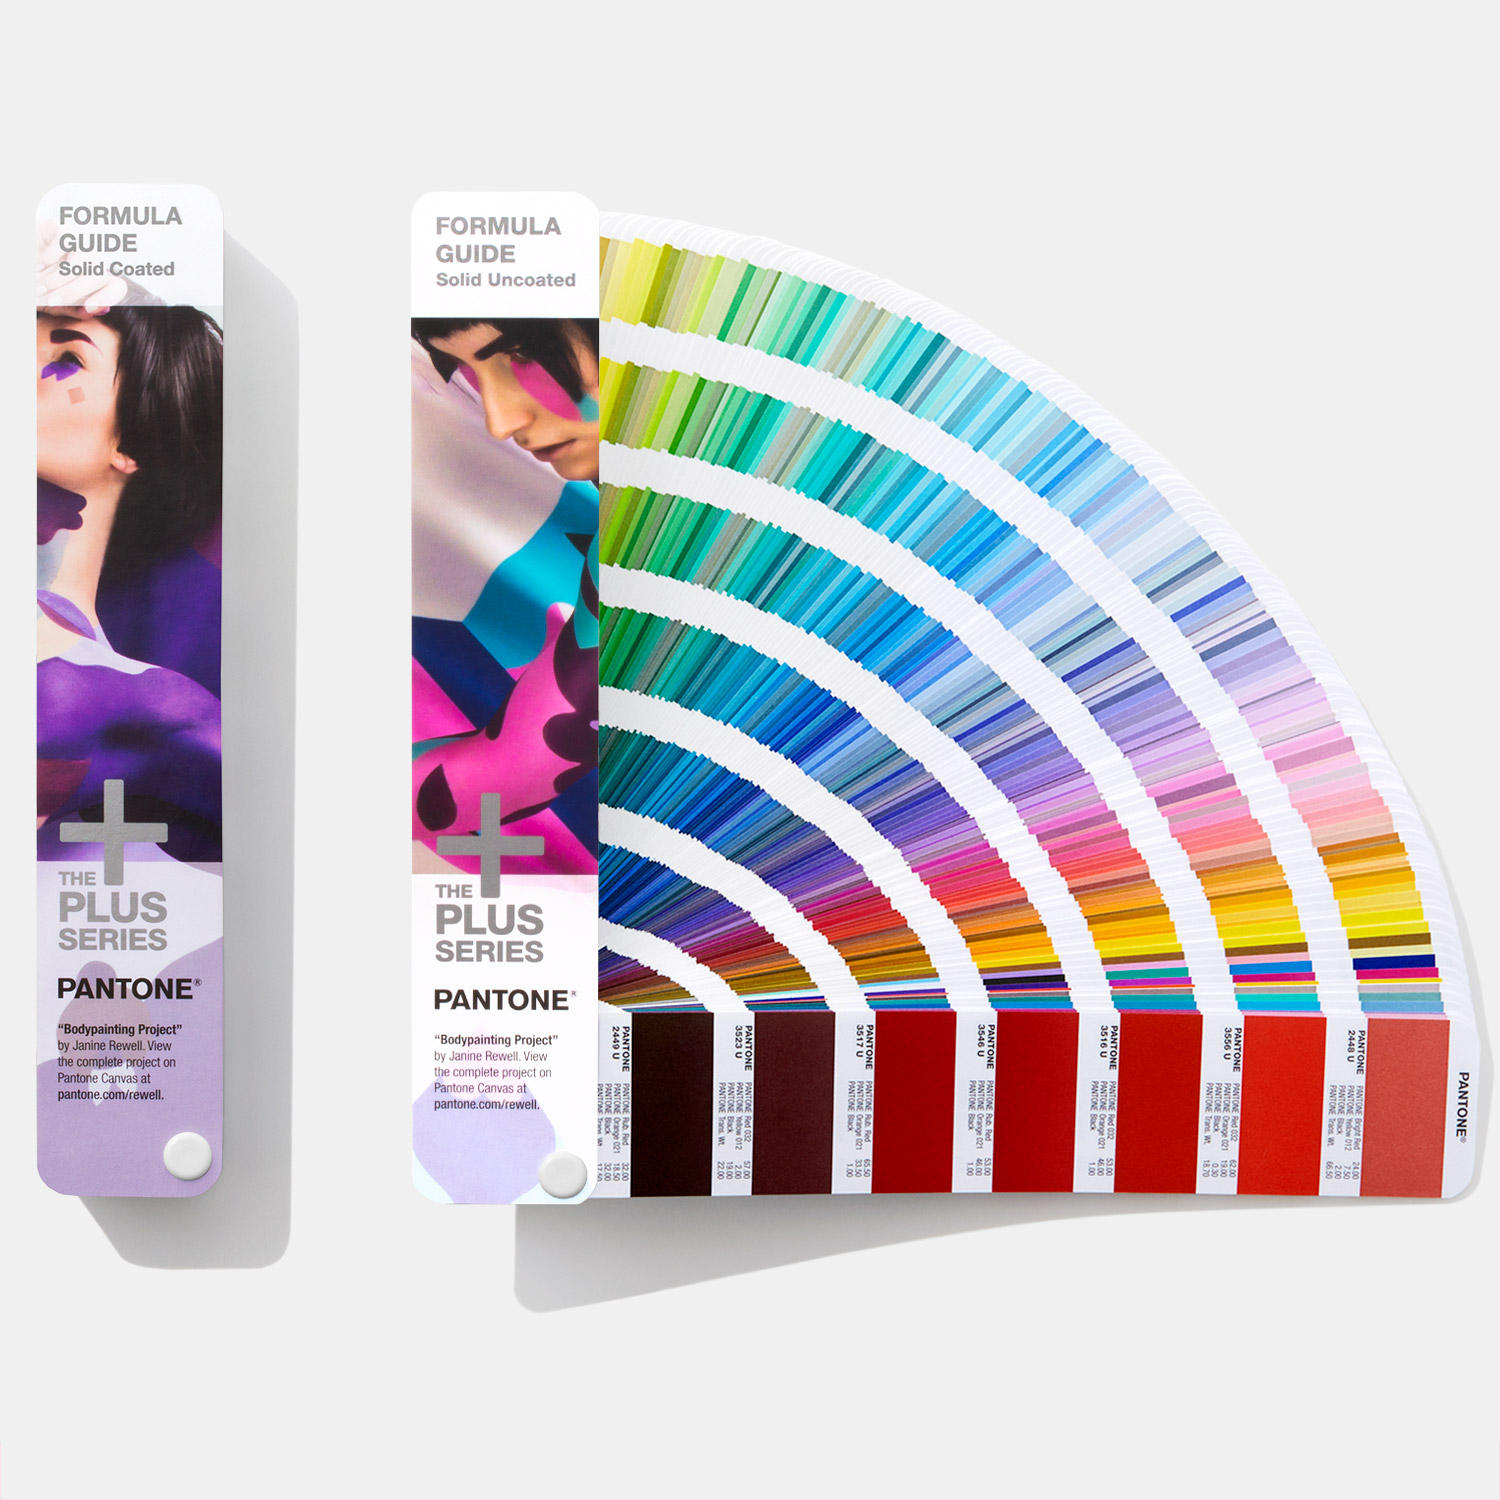 The Pantone Color Matching System